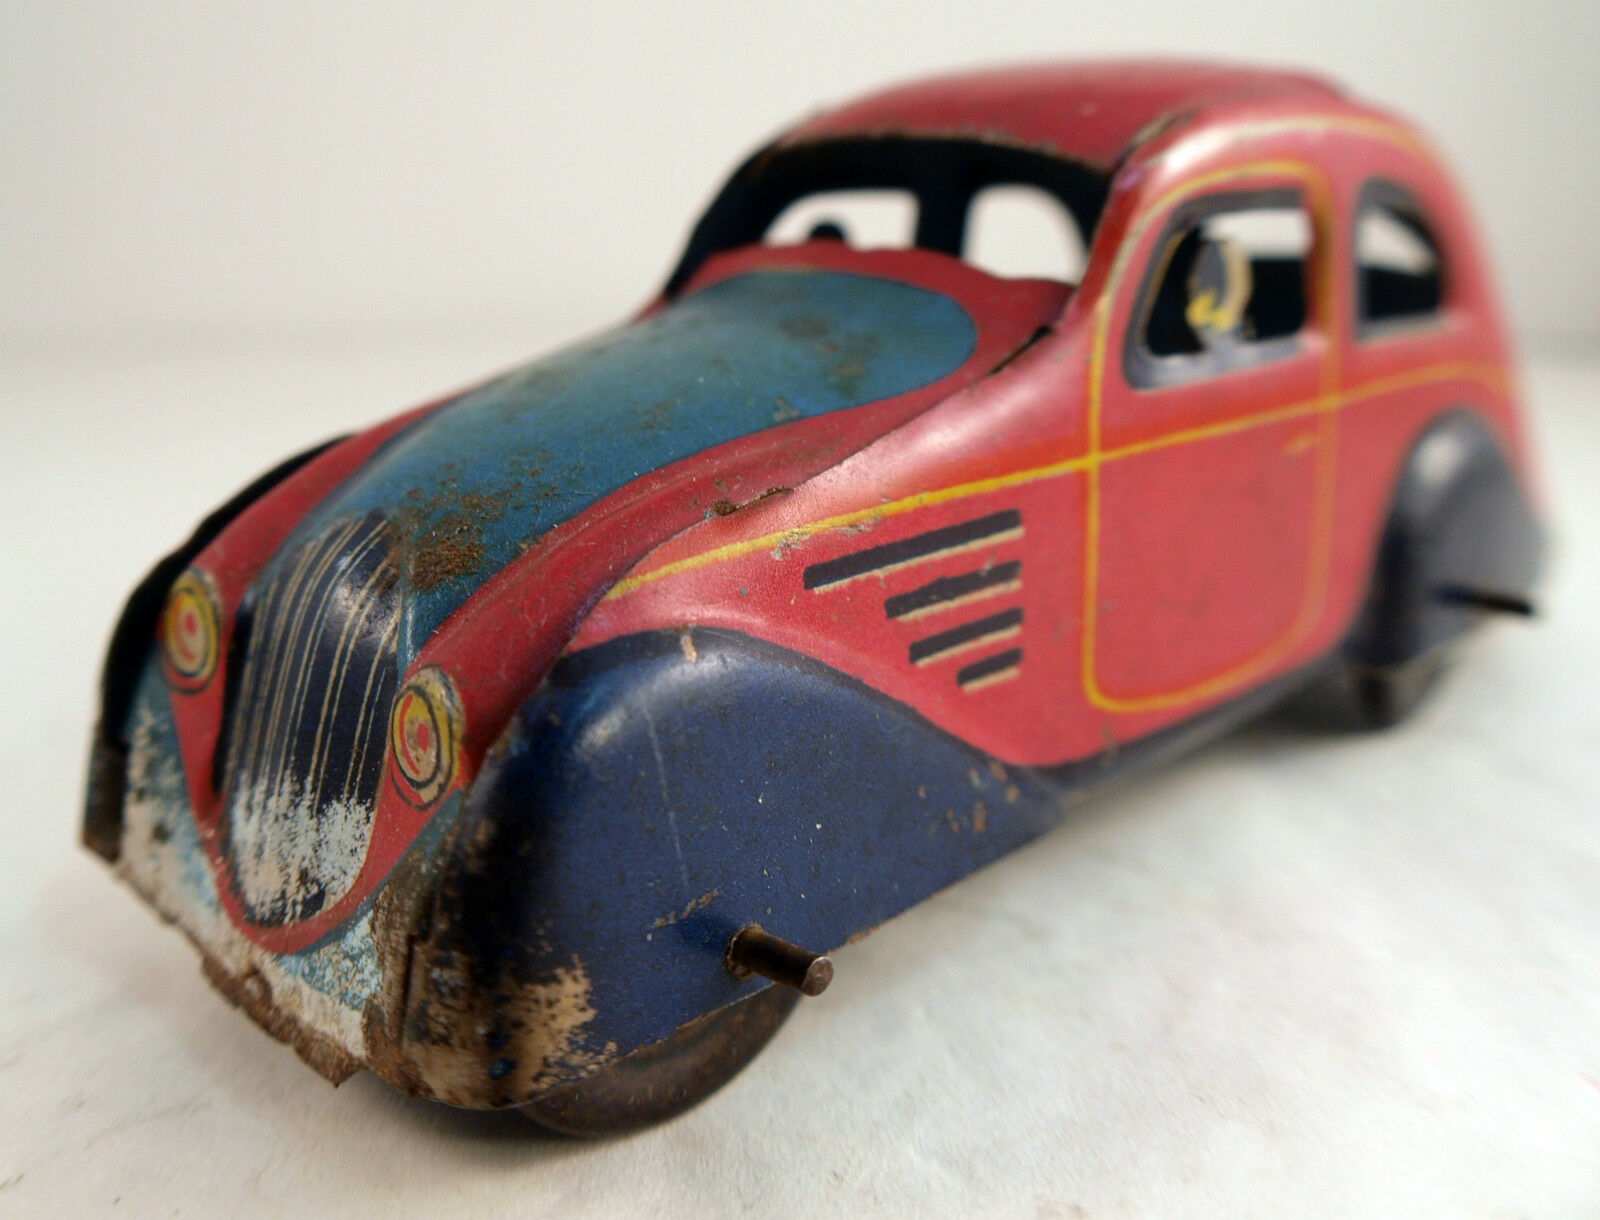 Paya Chrysler Airflow Coche Chapa Antiguo 12cm Tin Toy